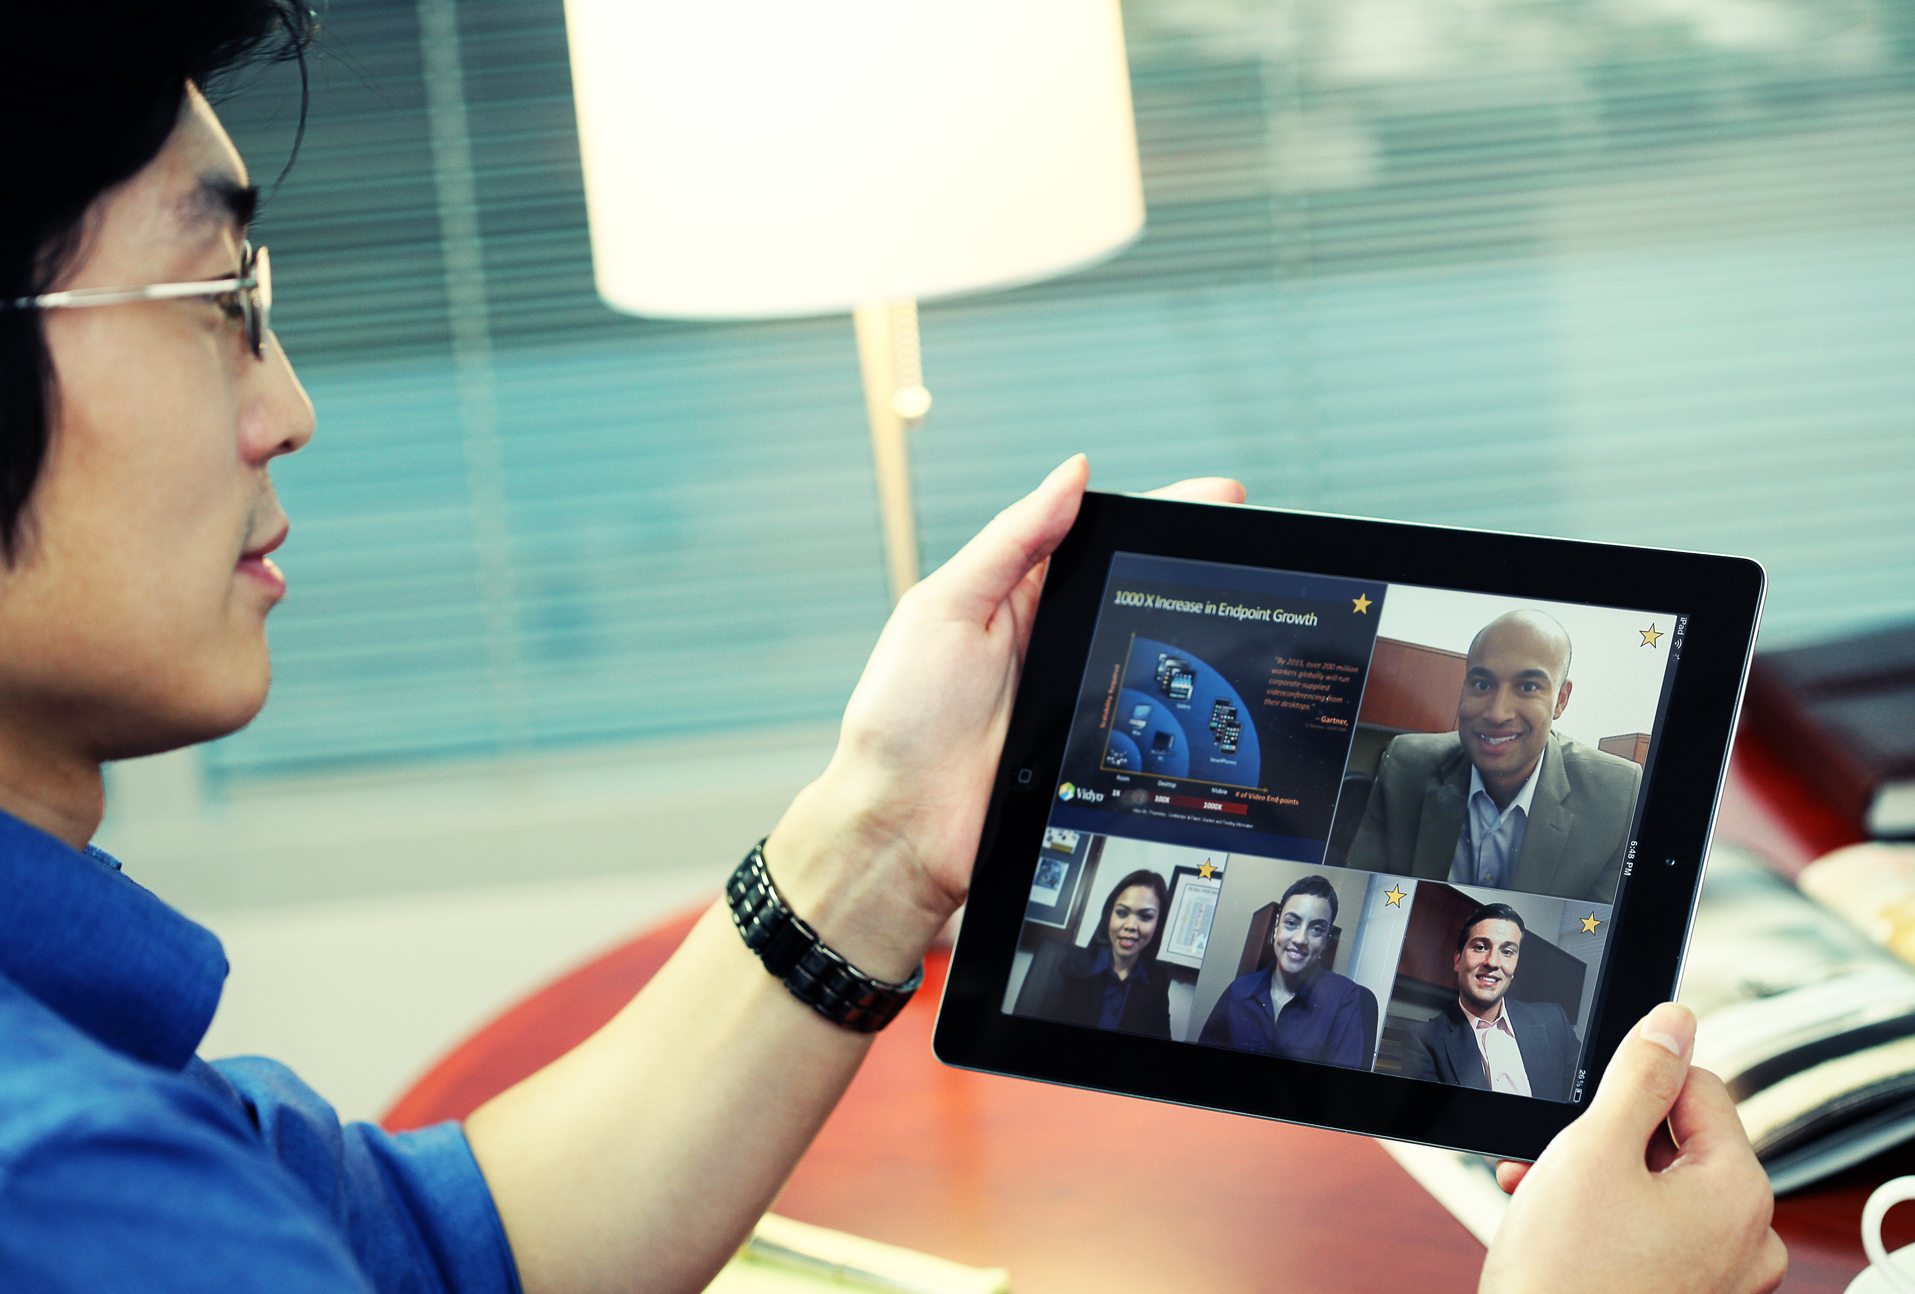 VidyoConferencing on an iPad